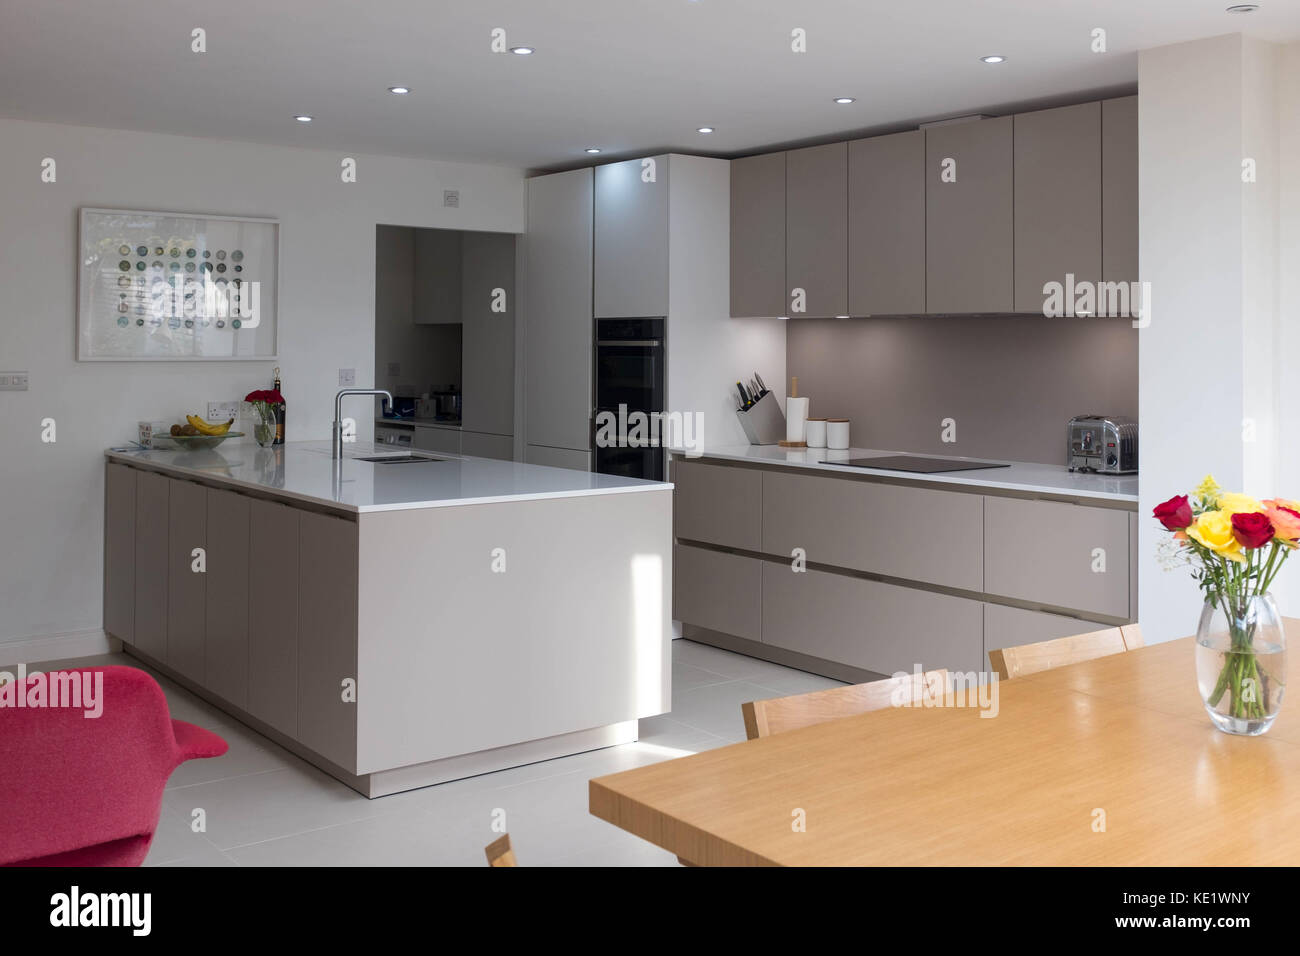 Siematic siematic r gold bronze siematic classic picture